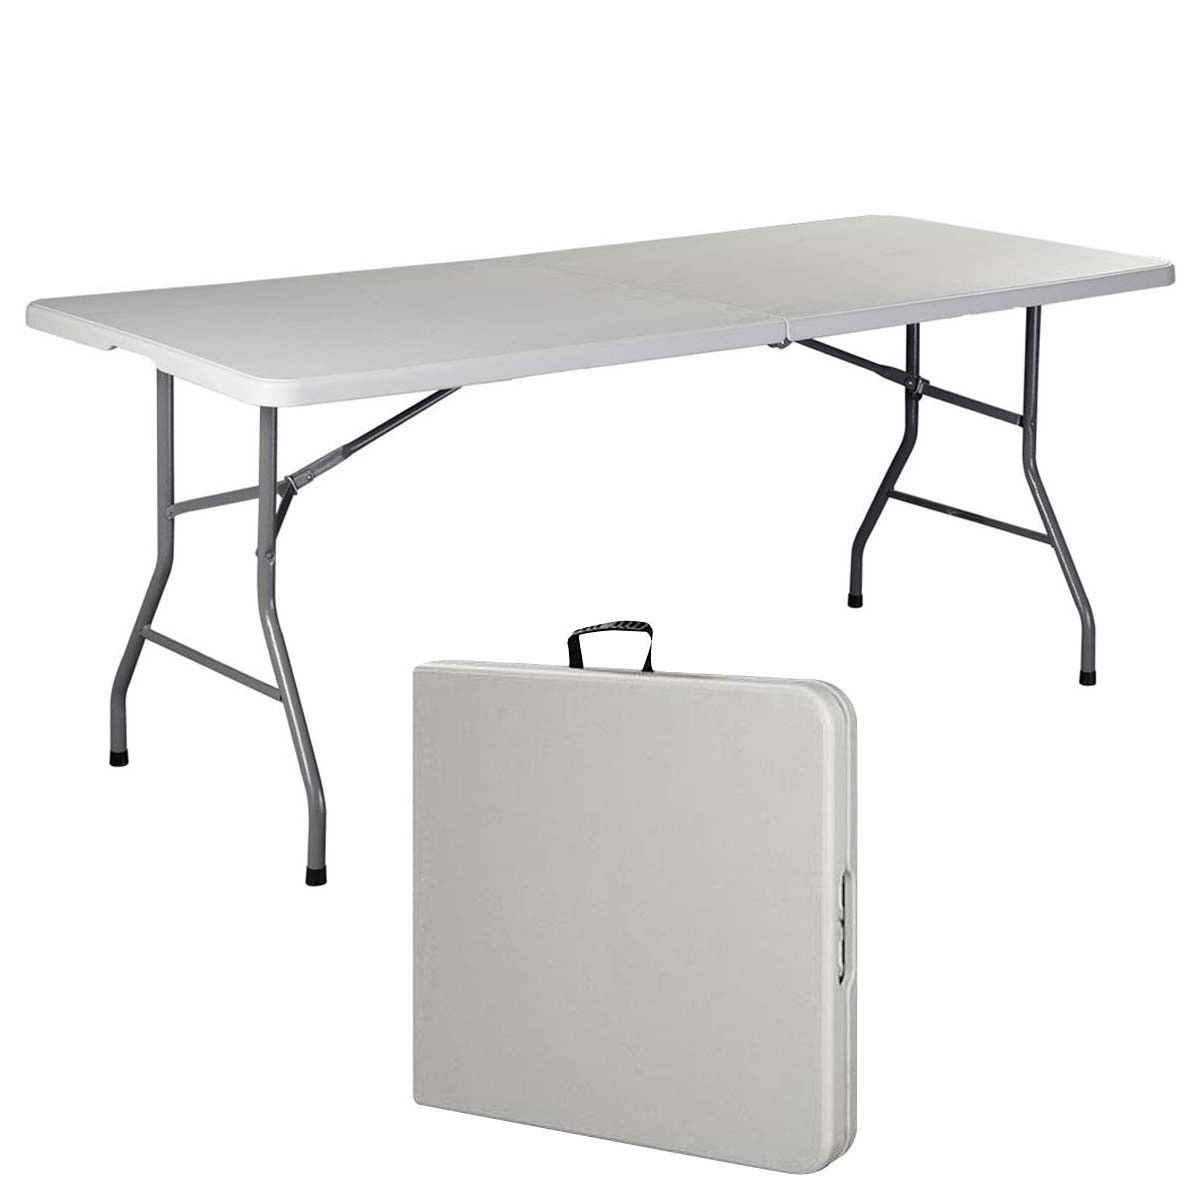 6' Folding Table Portable Plastic Indoor Outdoor Picnic Party Dining Camp Tables by Costway